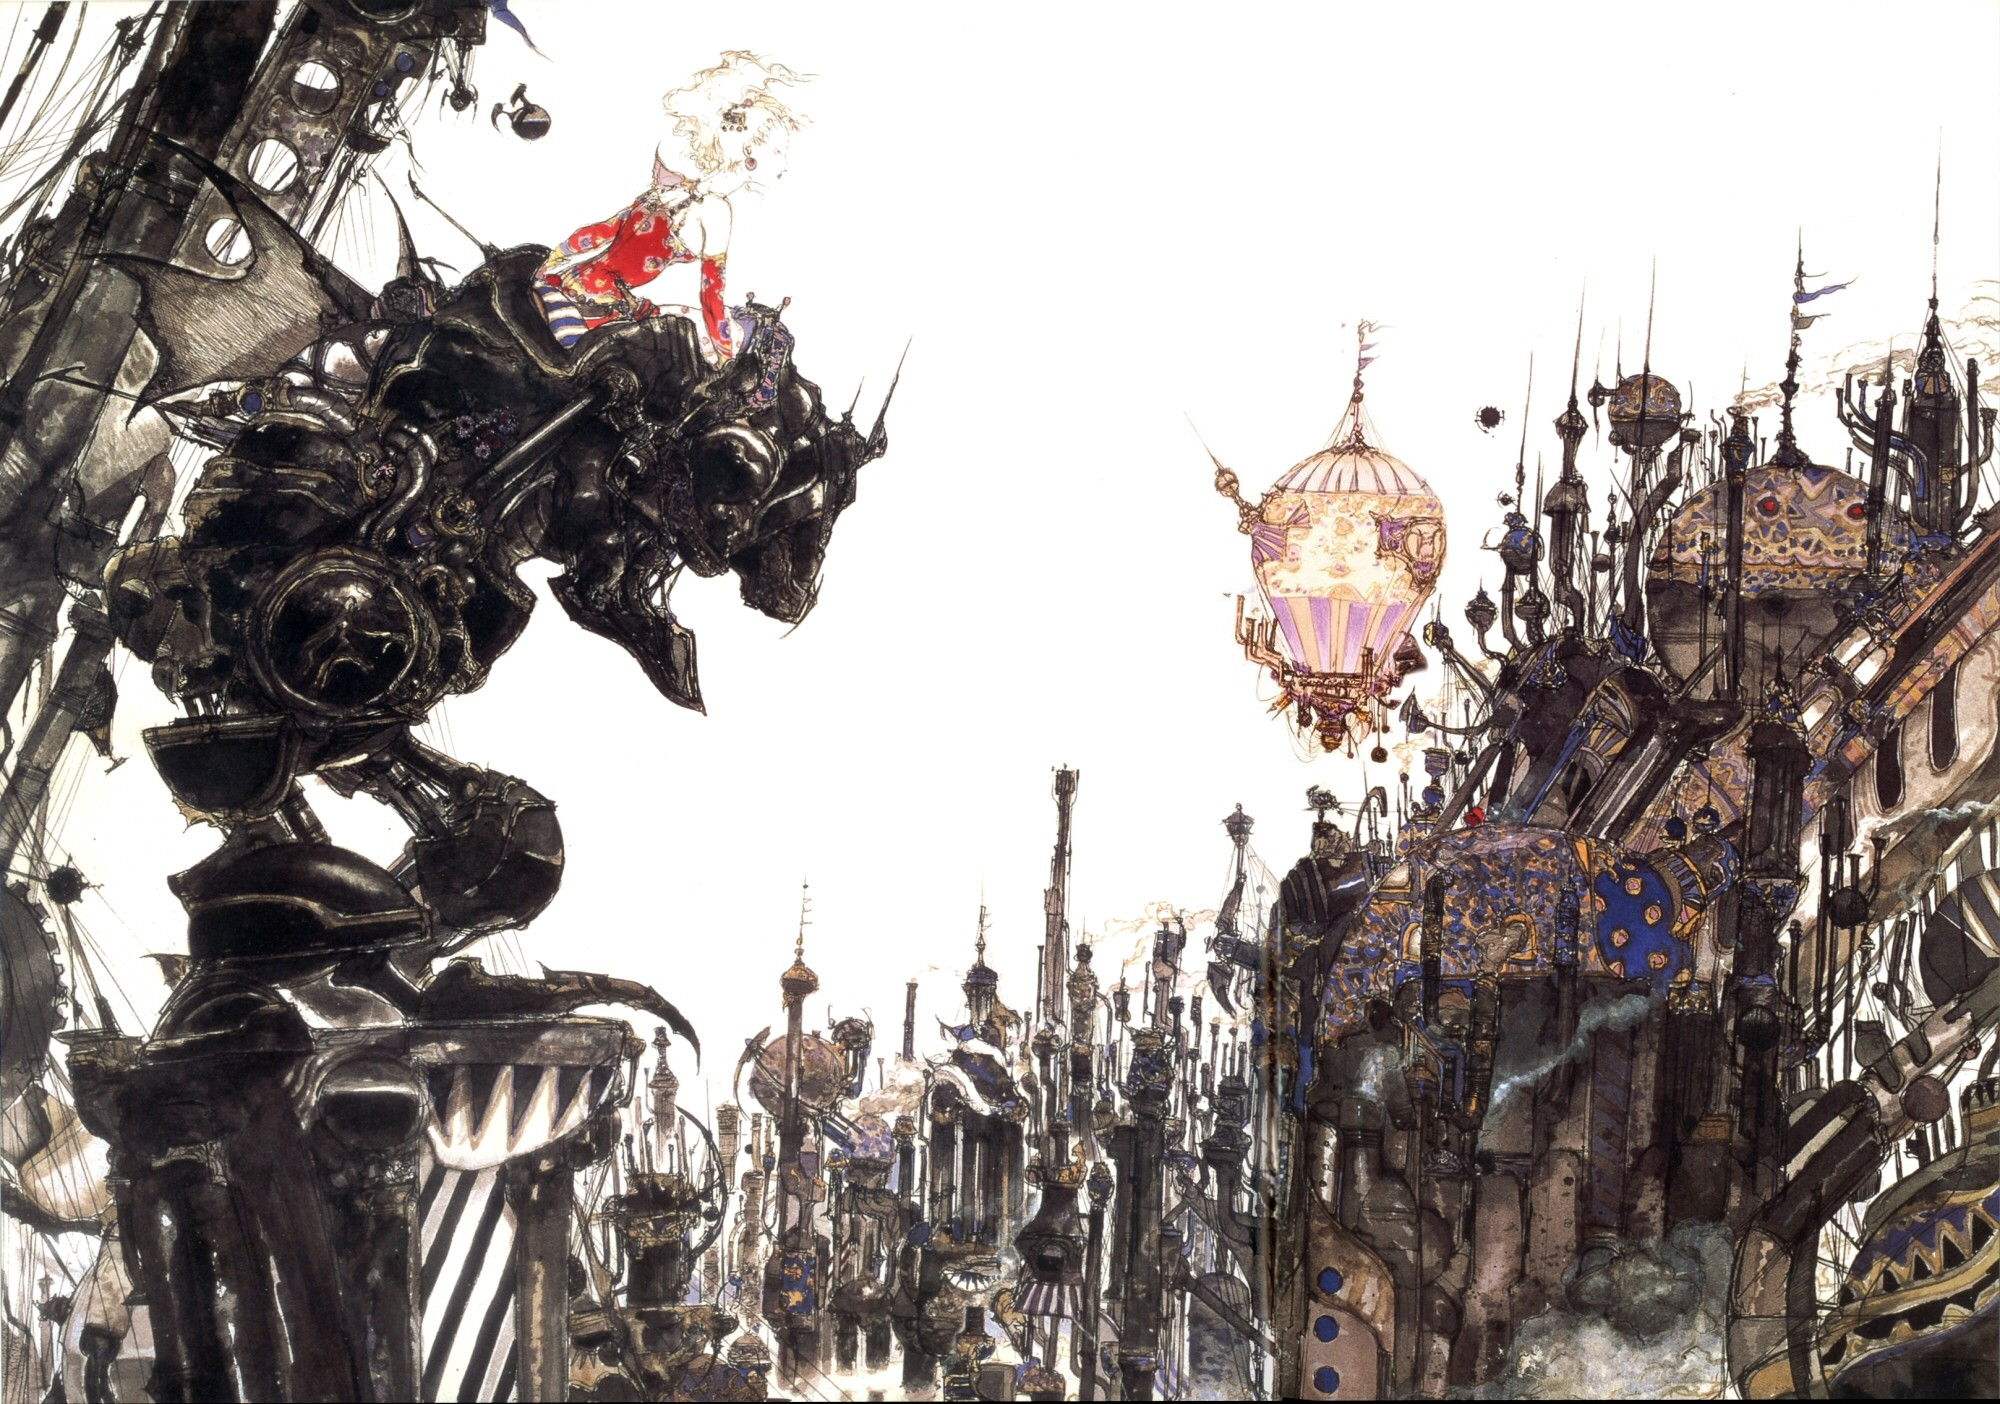 1920x1080 final fantasy vi wallpaper which is under the fantasy wallpapers .